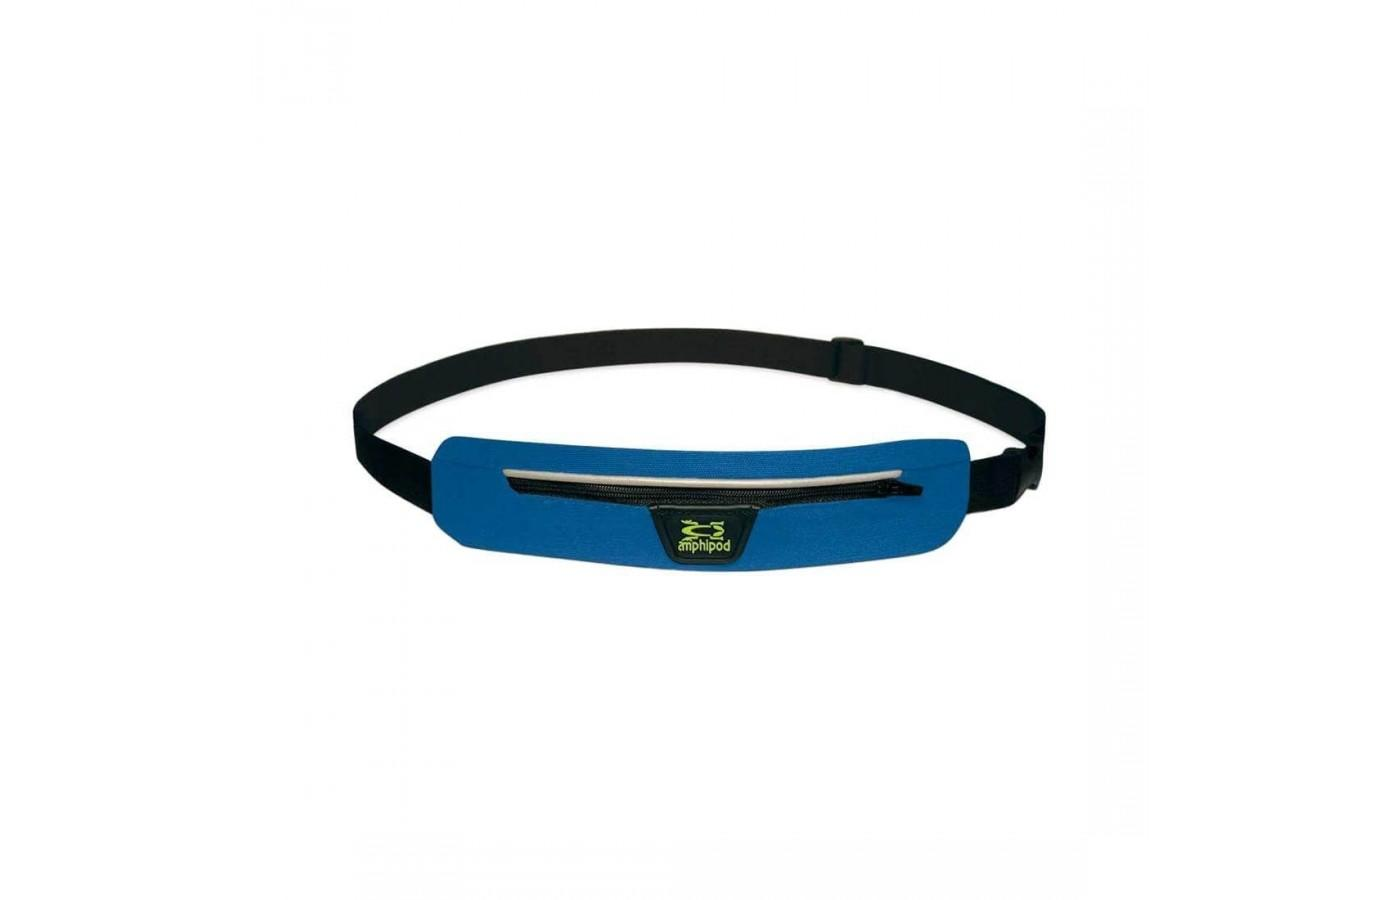 The Amphipod Airflow Microstretch Belt has reflective detailing